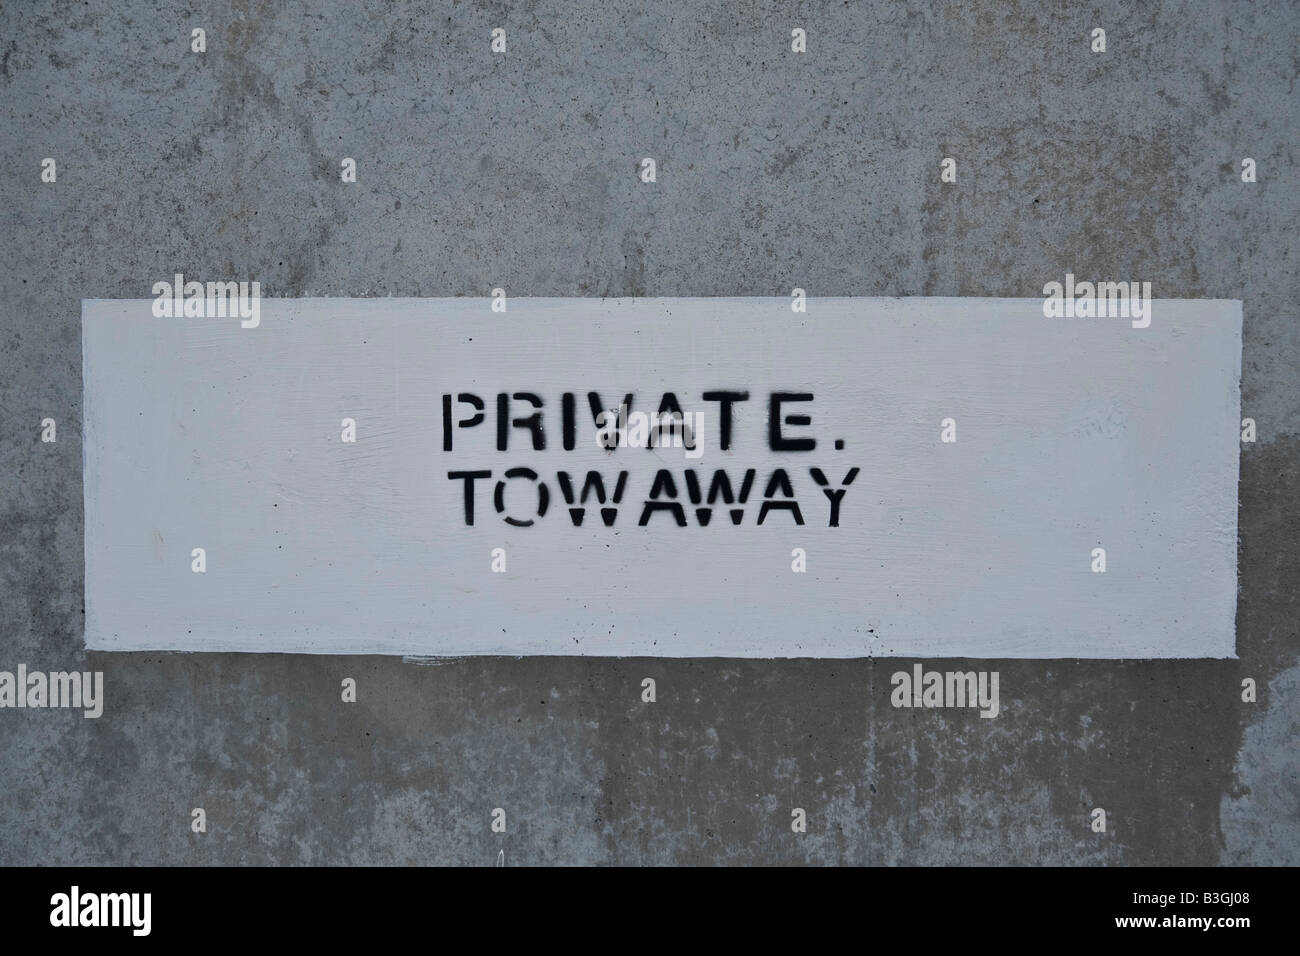 Private towaway sign - Stock Image